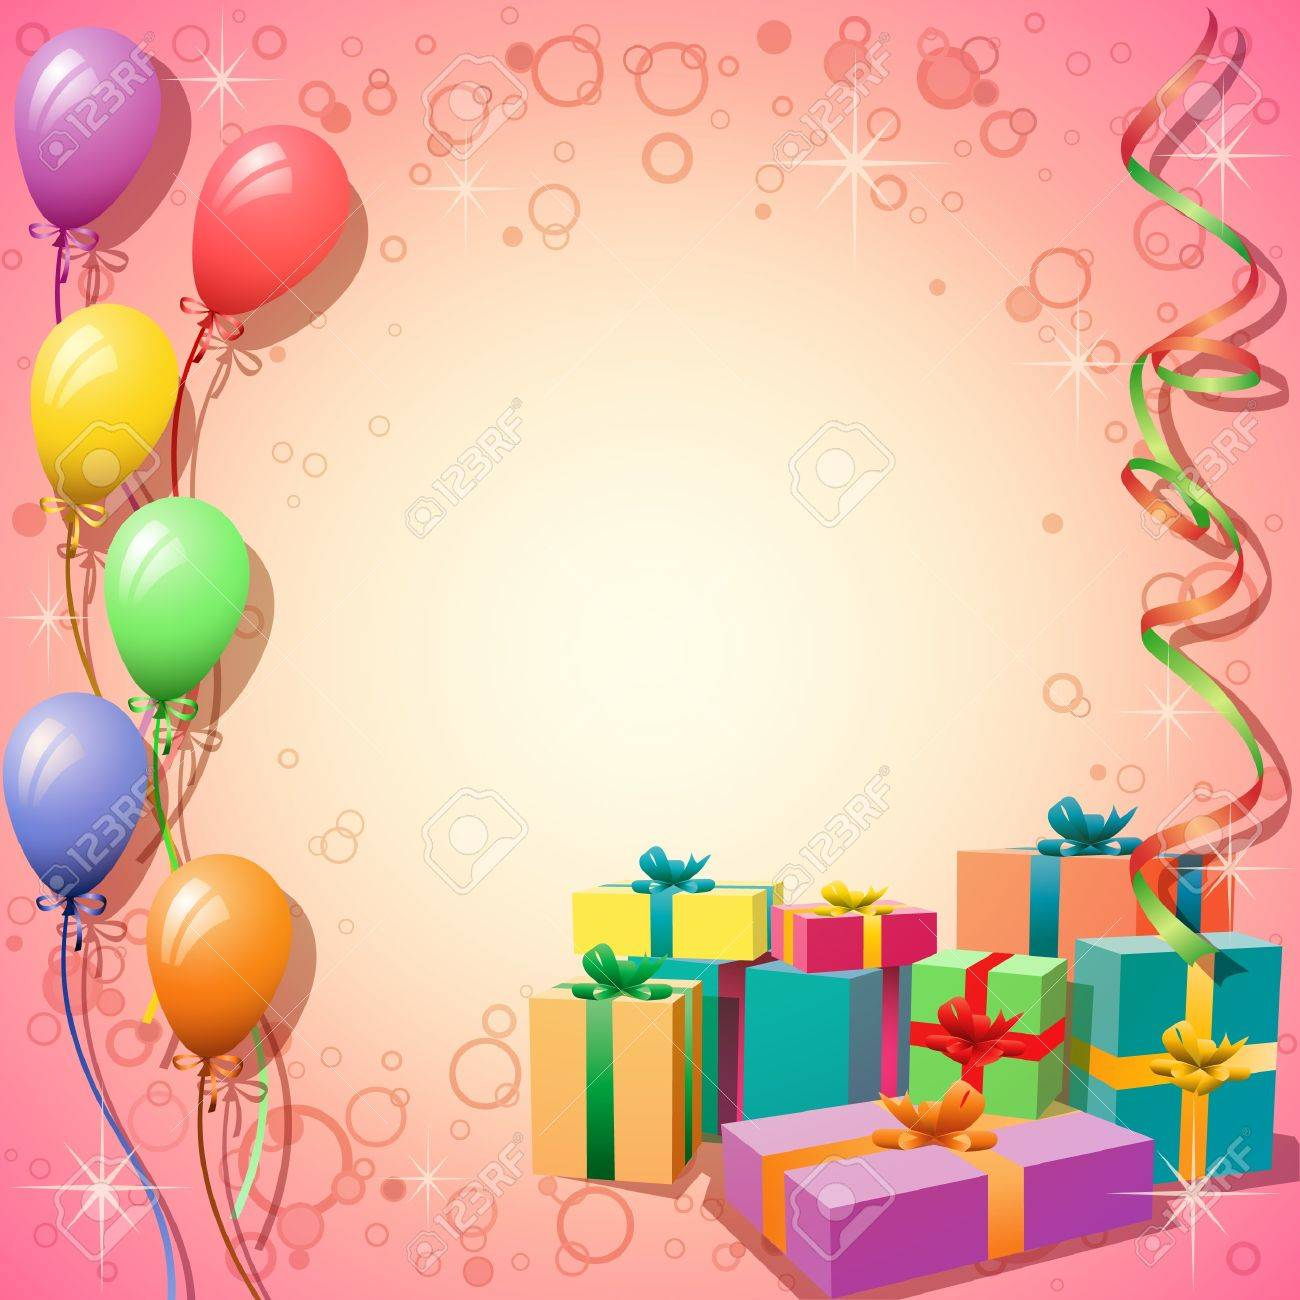 Balloon Background with Streamers and Gift Boxes Stock Vector - 10554687